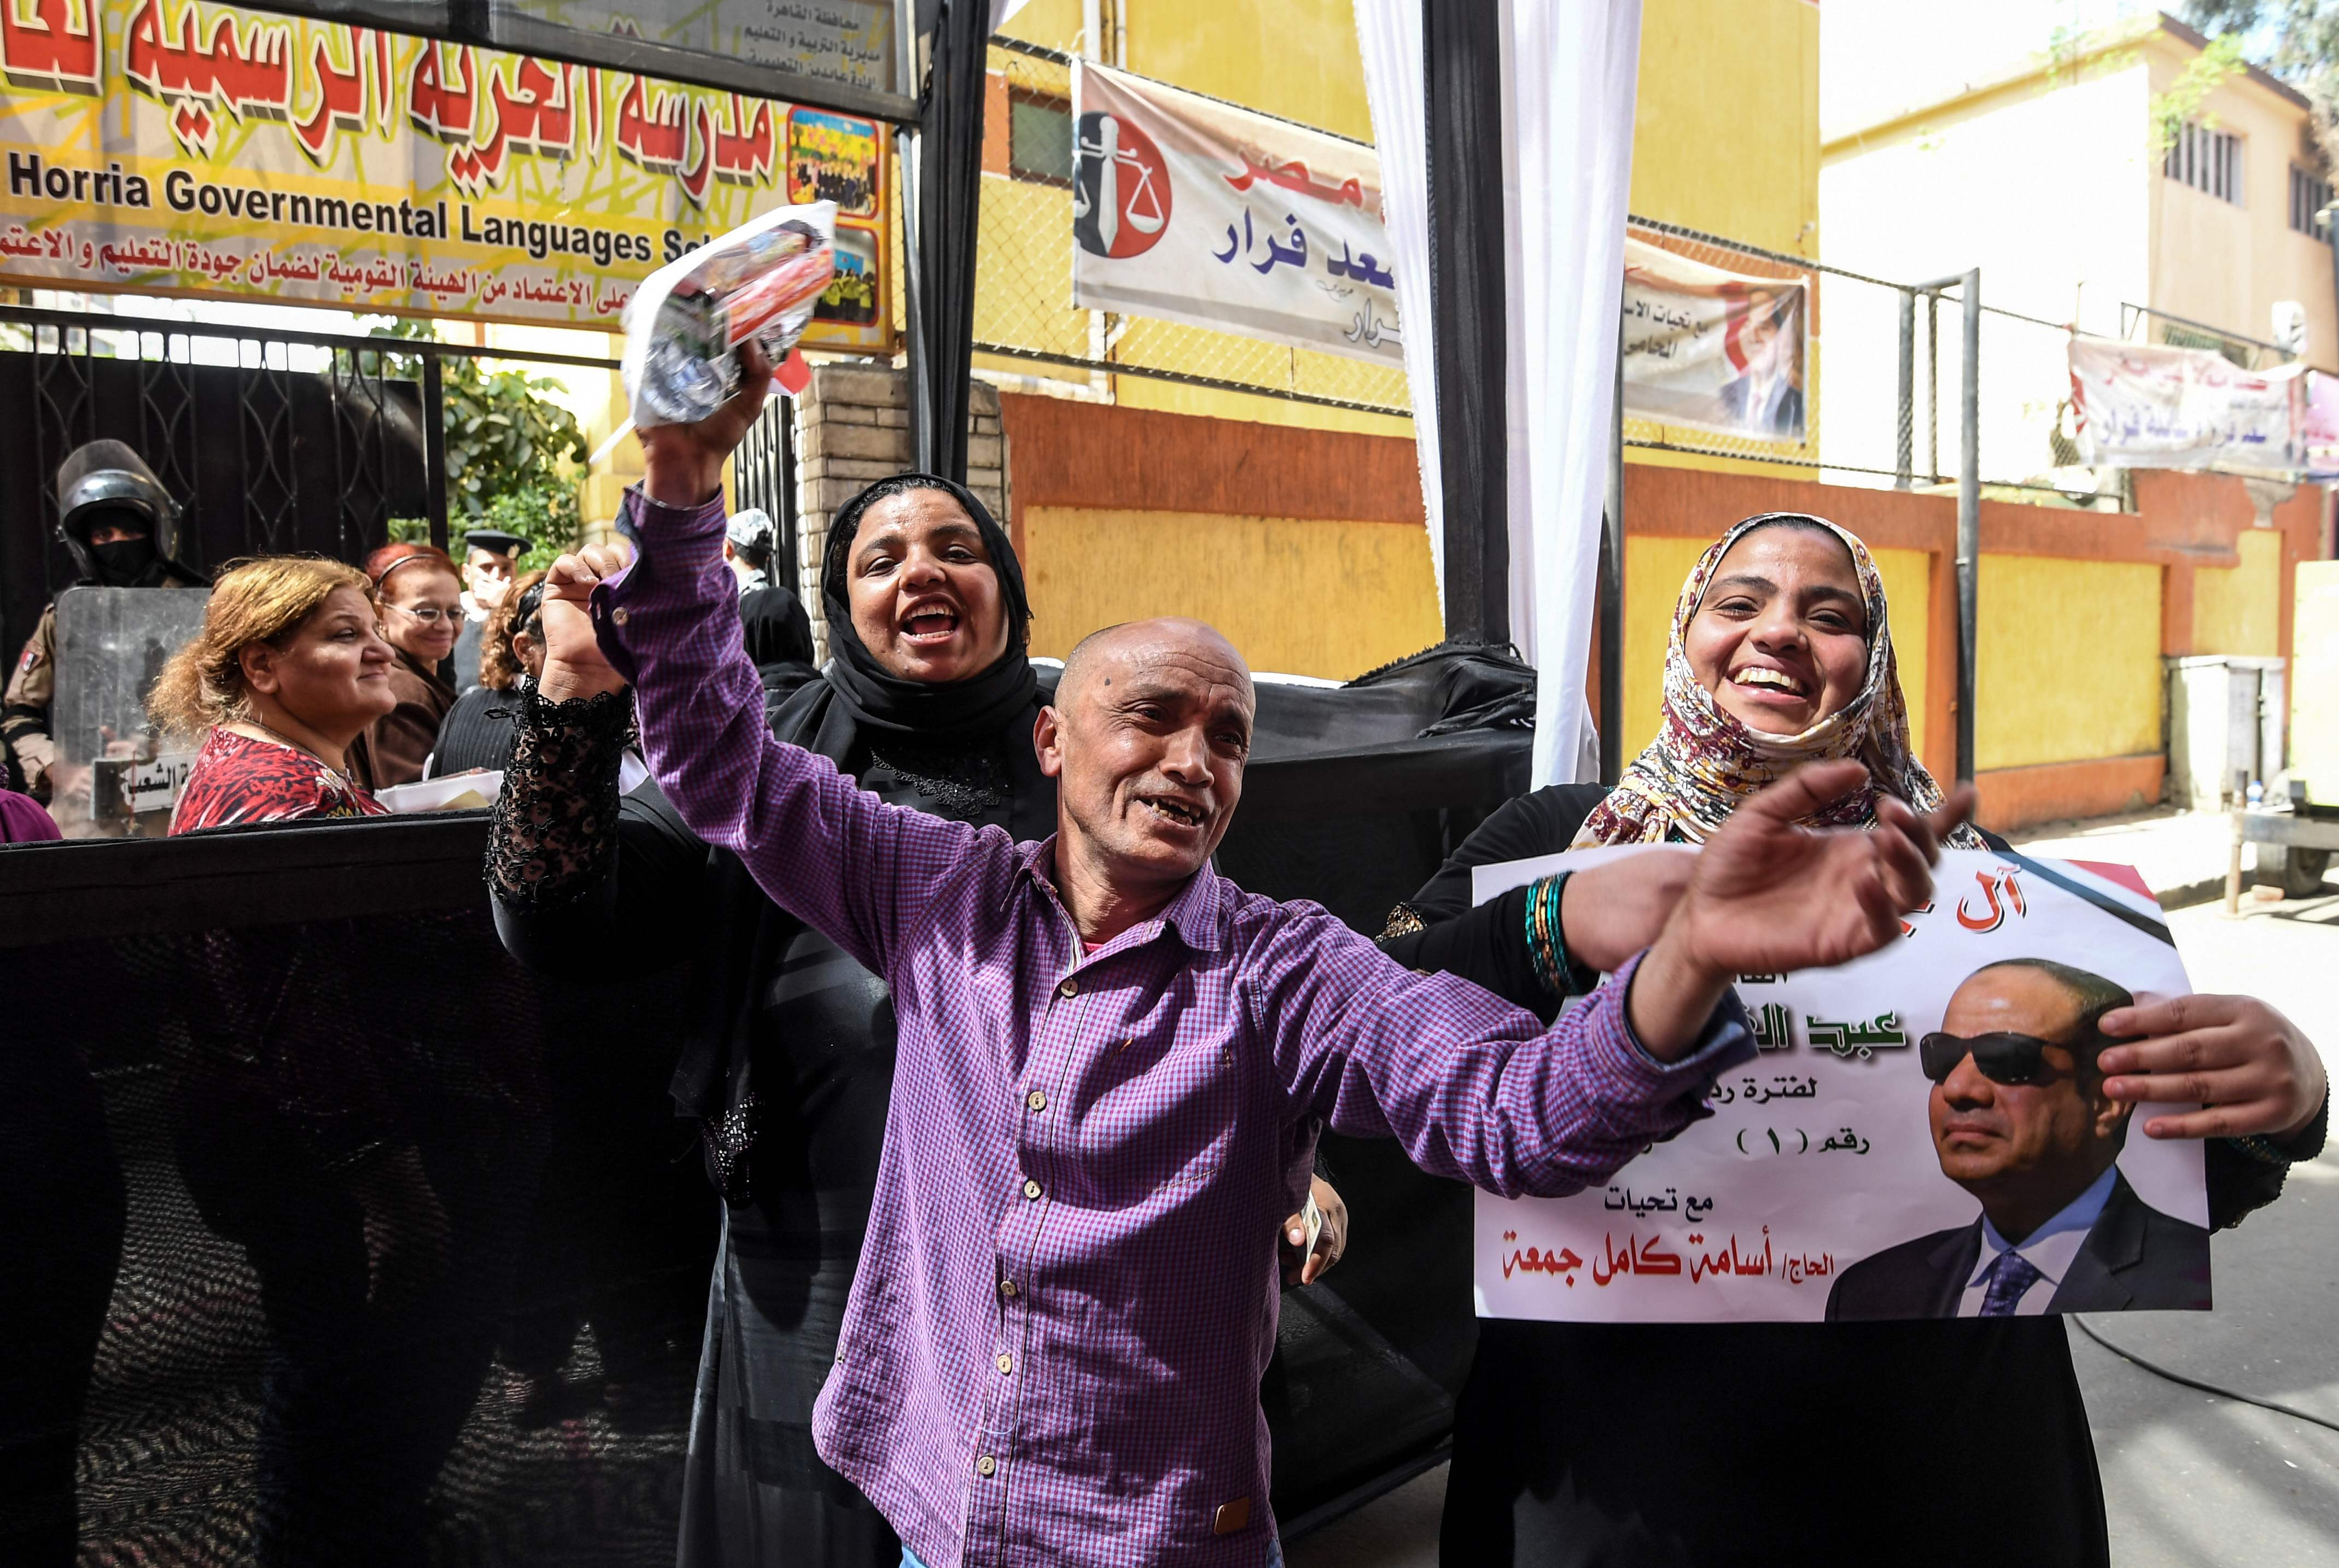 Egyptians dance and celebrate with an electoral poster of incumbent President Abdel Fattah al-Sisi outside a polling station in Cairo on March 26, 2018 on the first day of voting in the 2018 presidential election.  Egyptians head to the polls in a thr